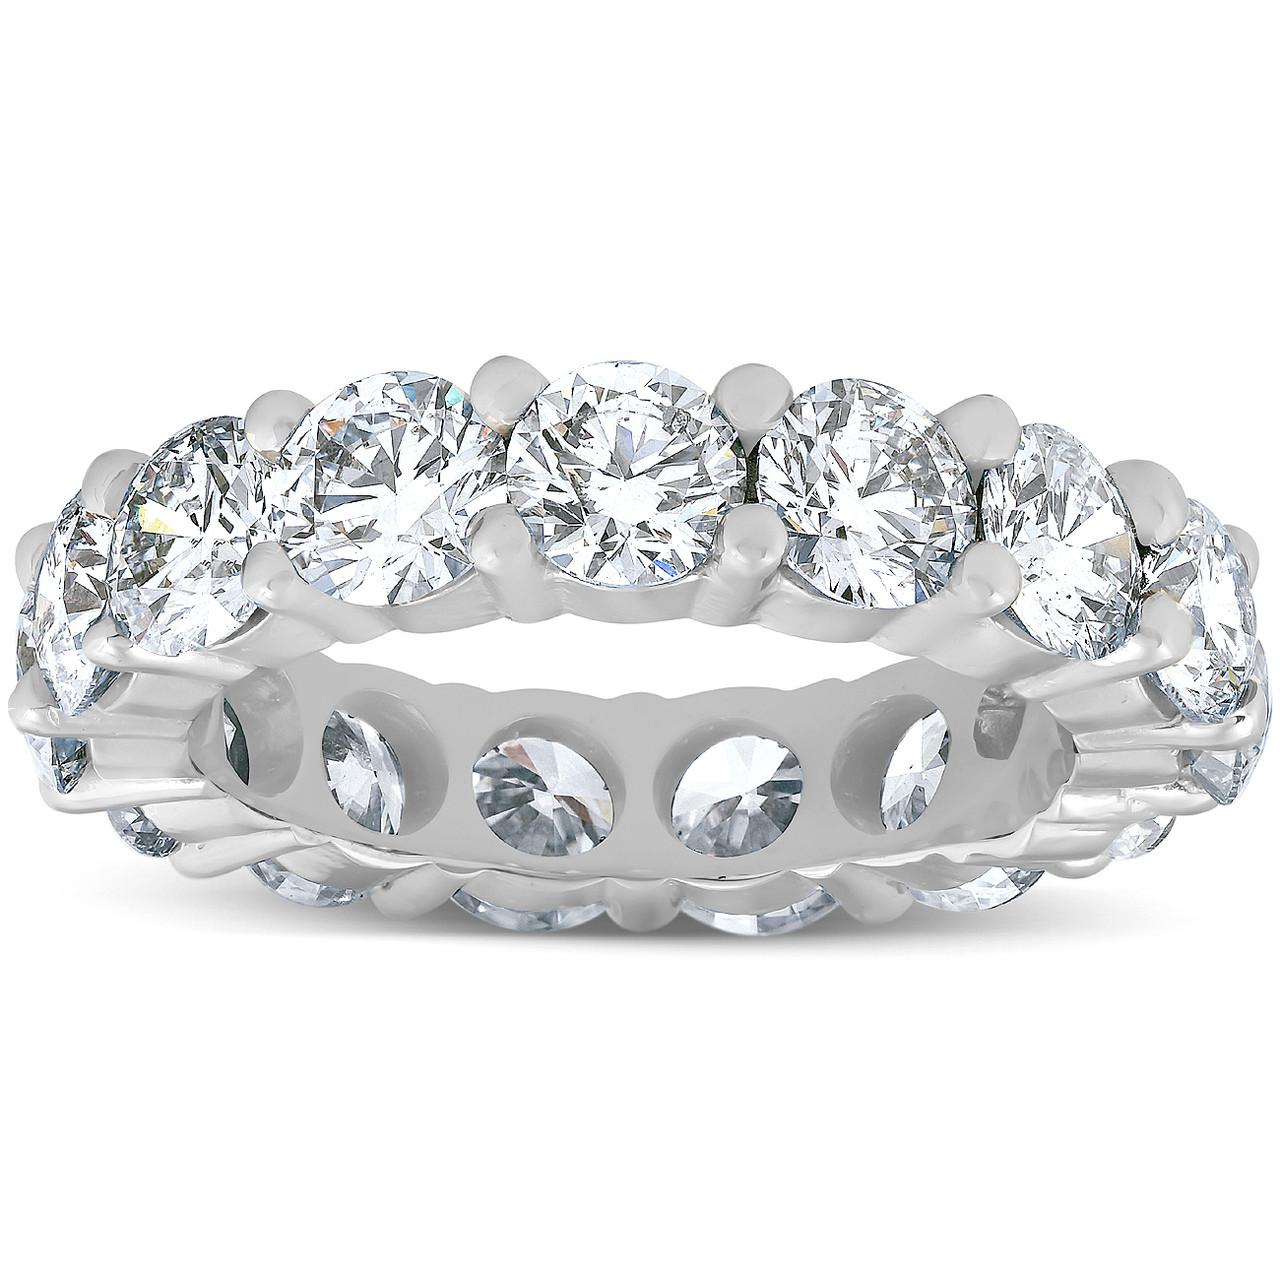 white nl gold ct jewelry in fascinating diamond wg platinum with wedding band stone eternity ring bands carat